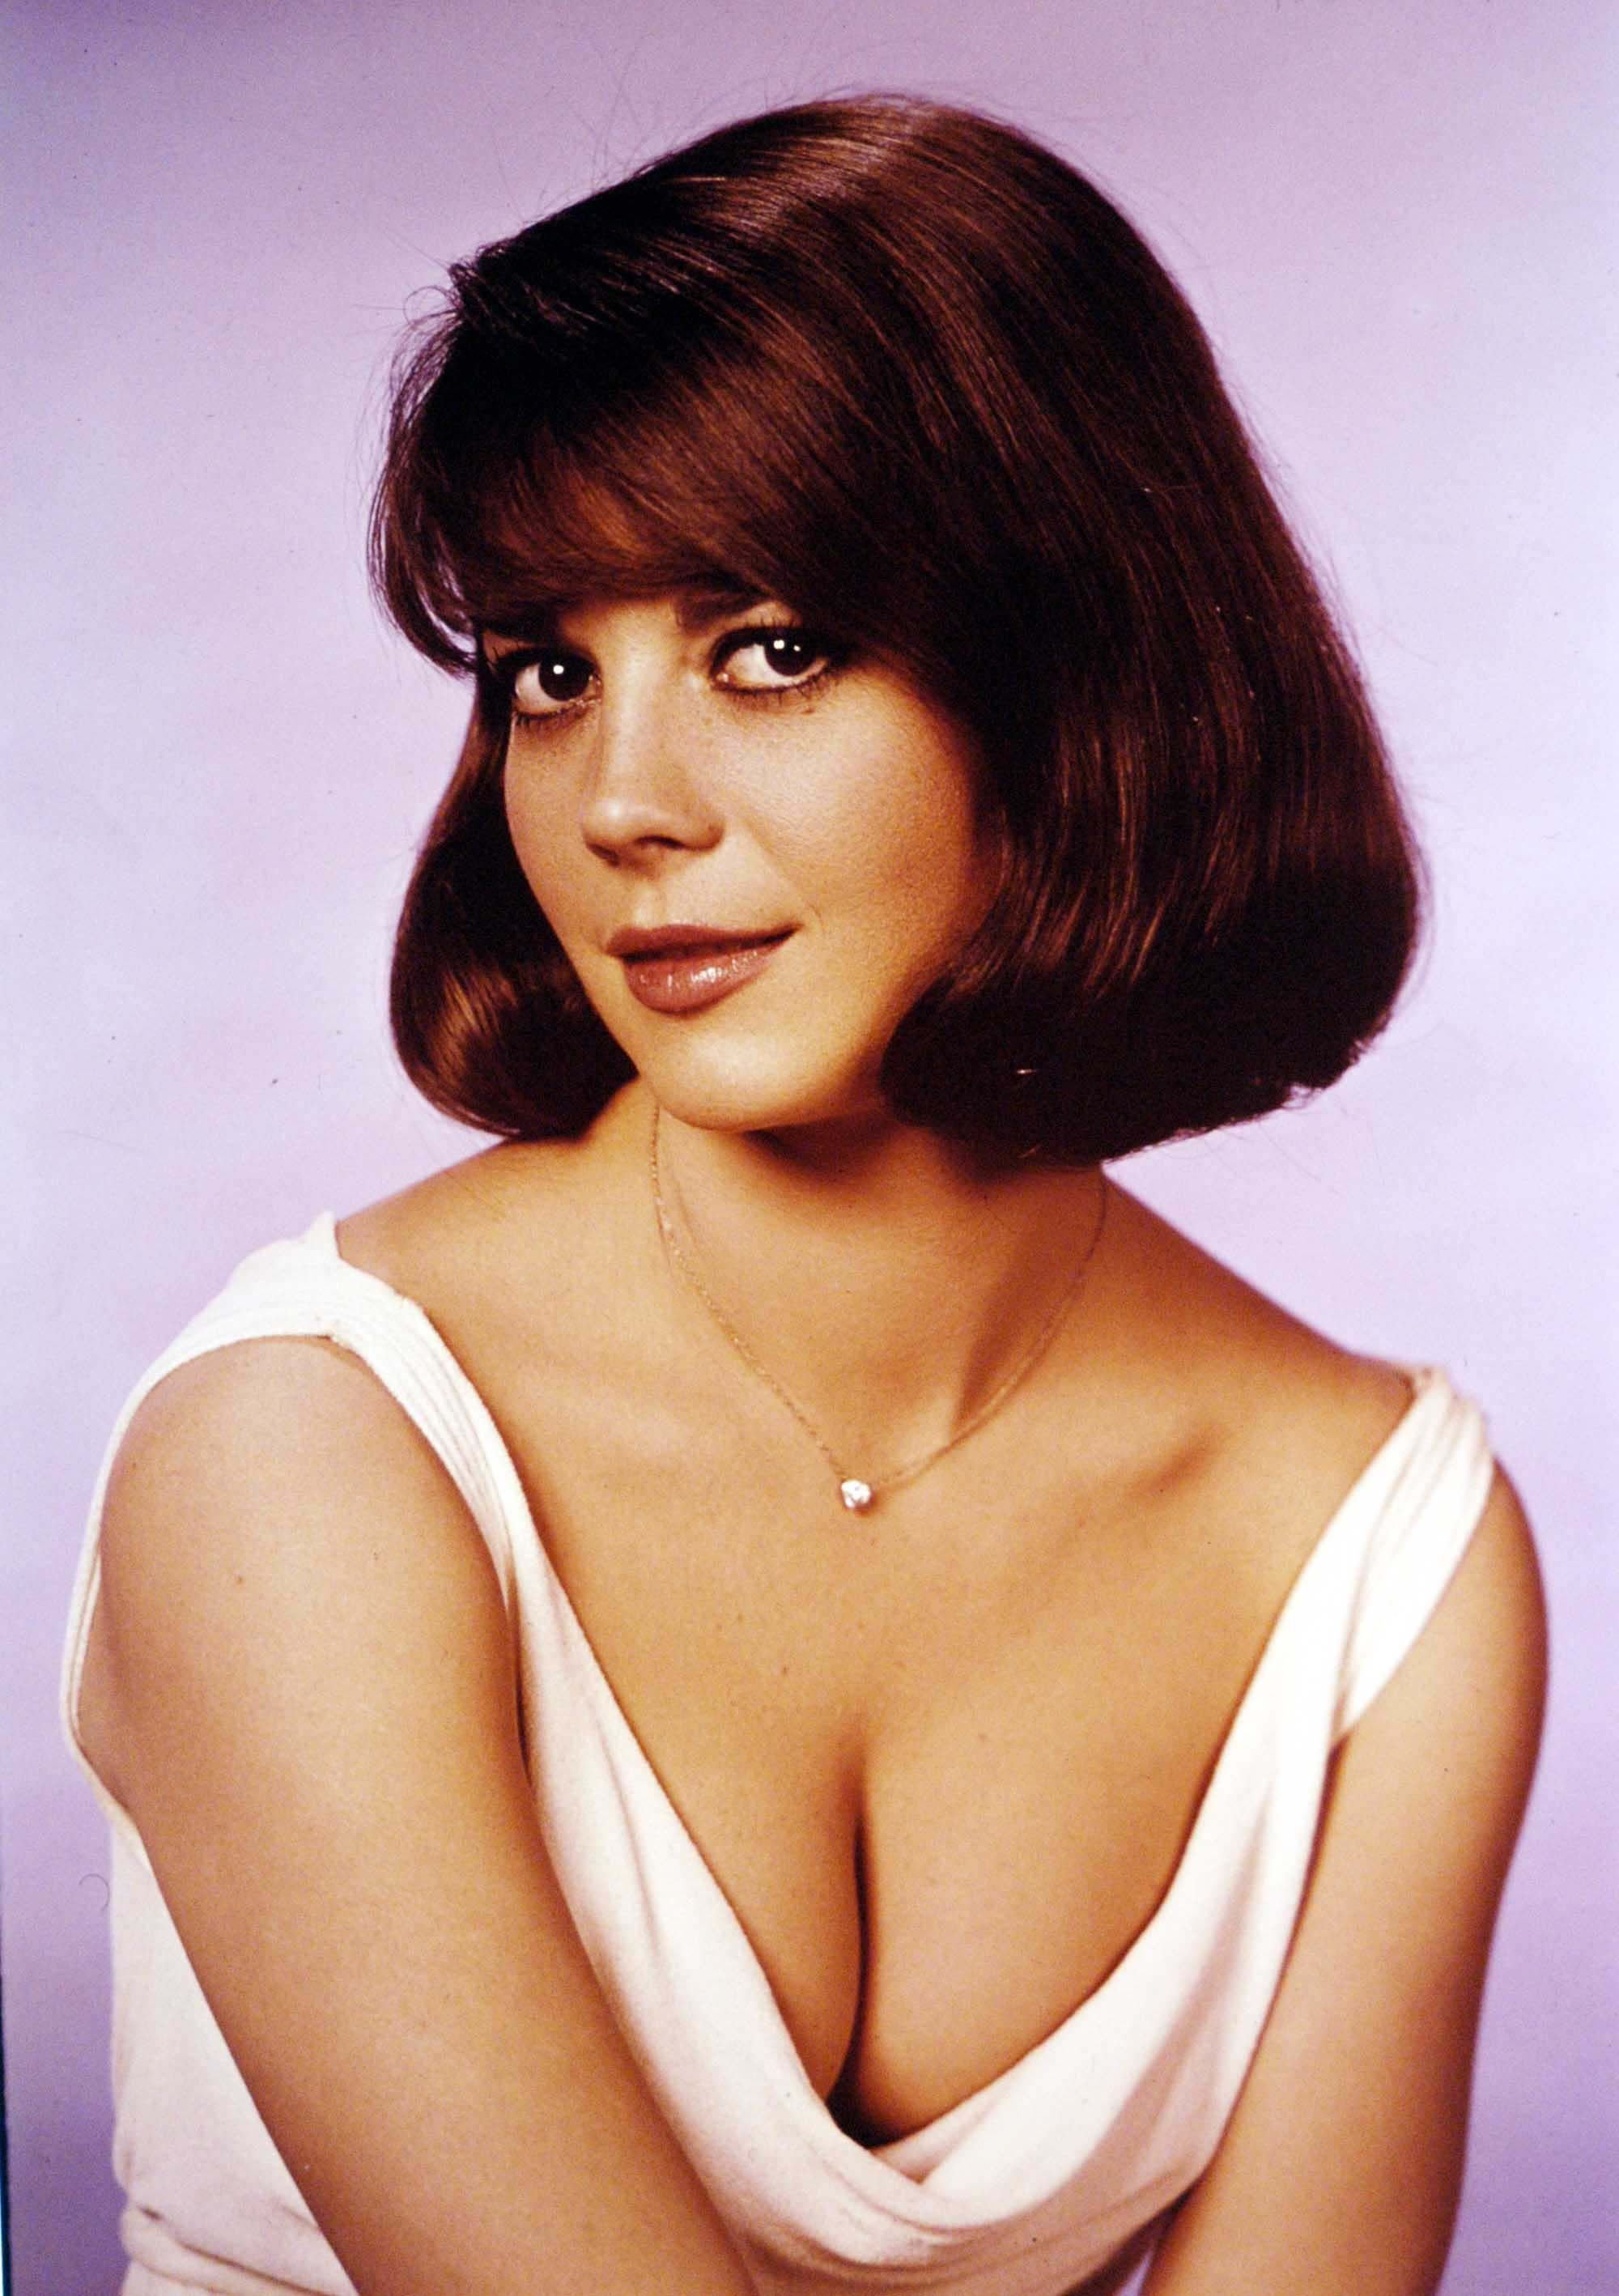 L'actrice américaine Natalie Wood. | Photo : Getty Images